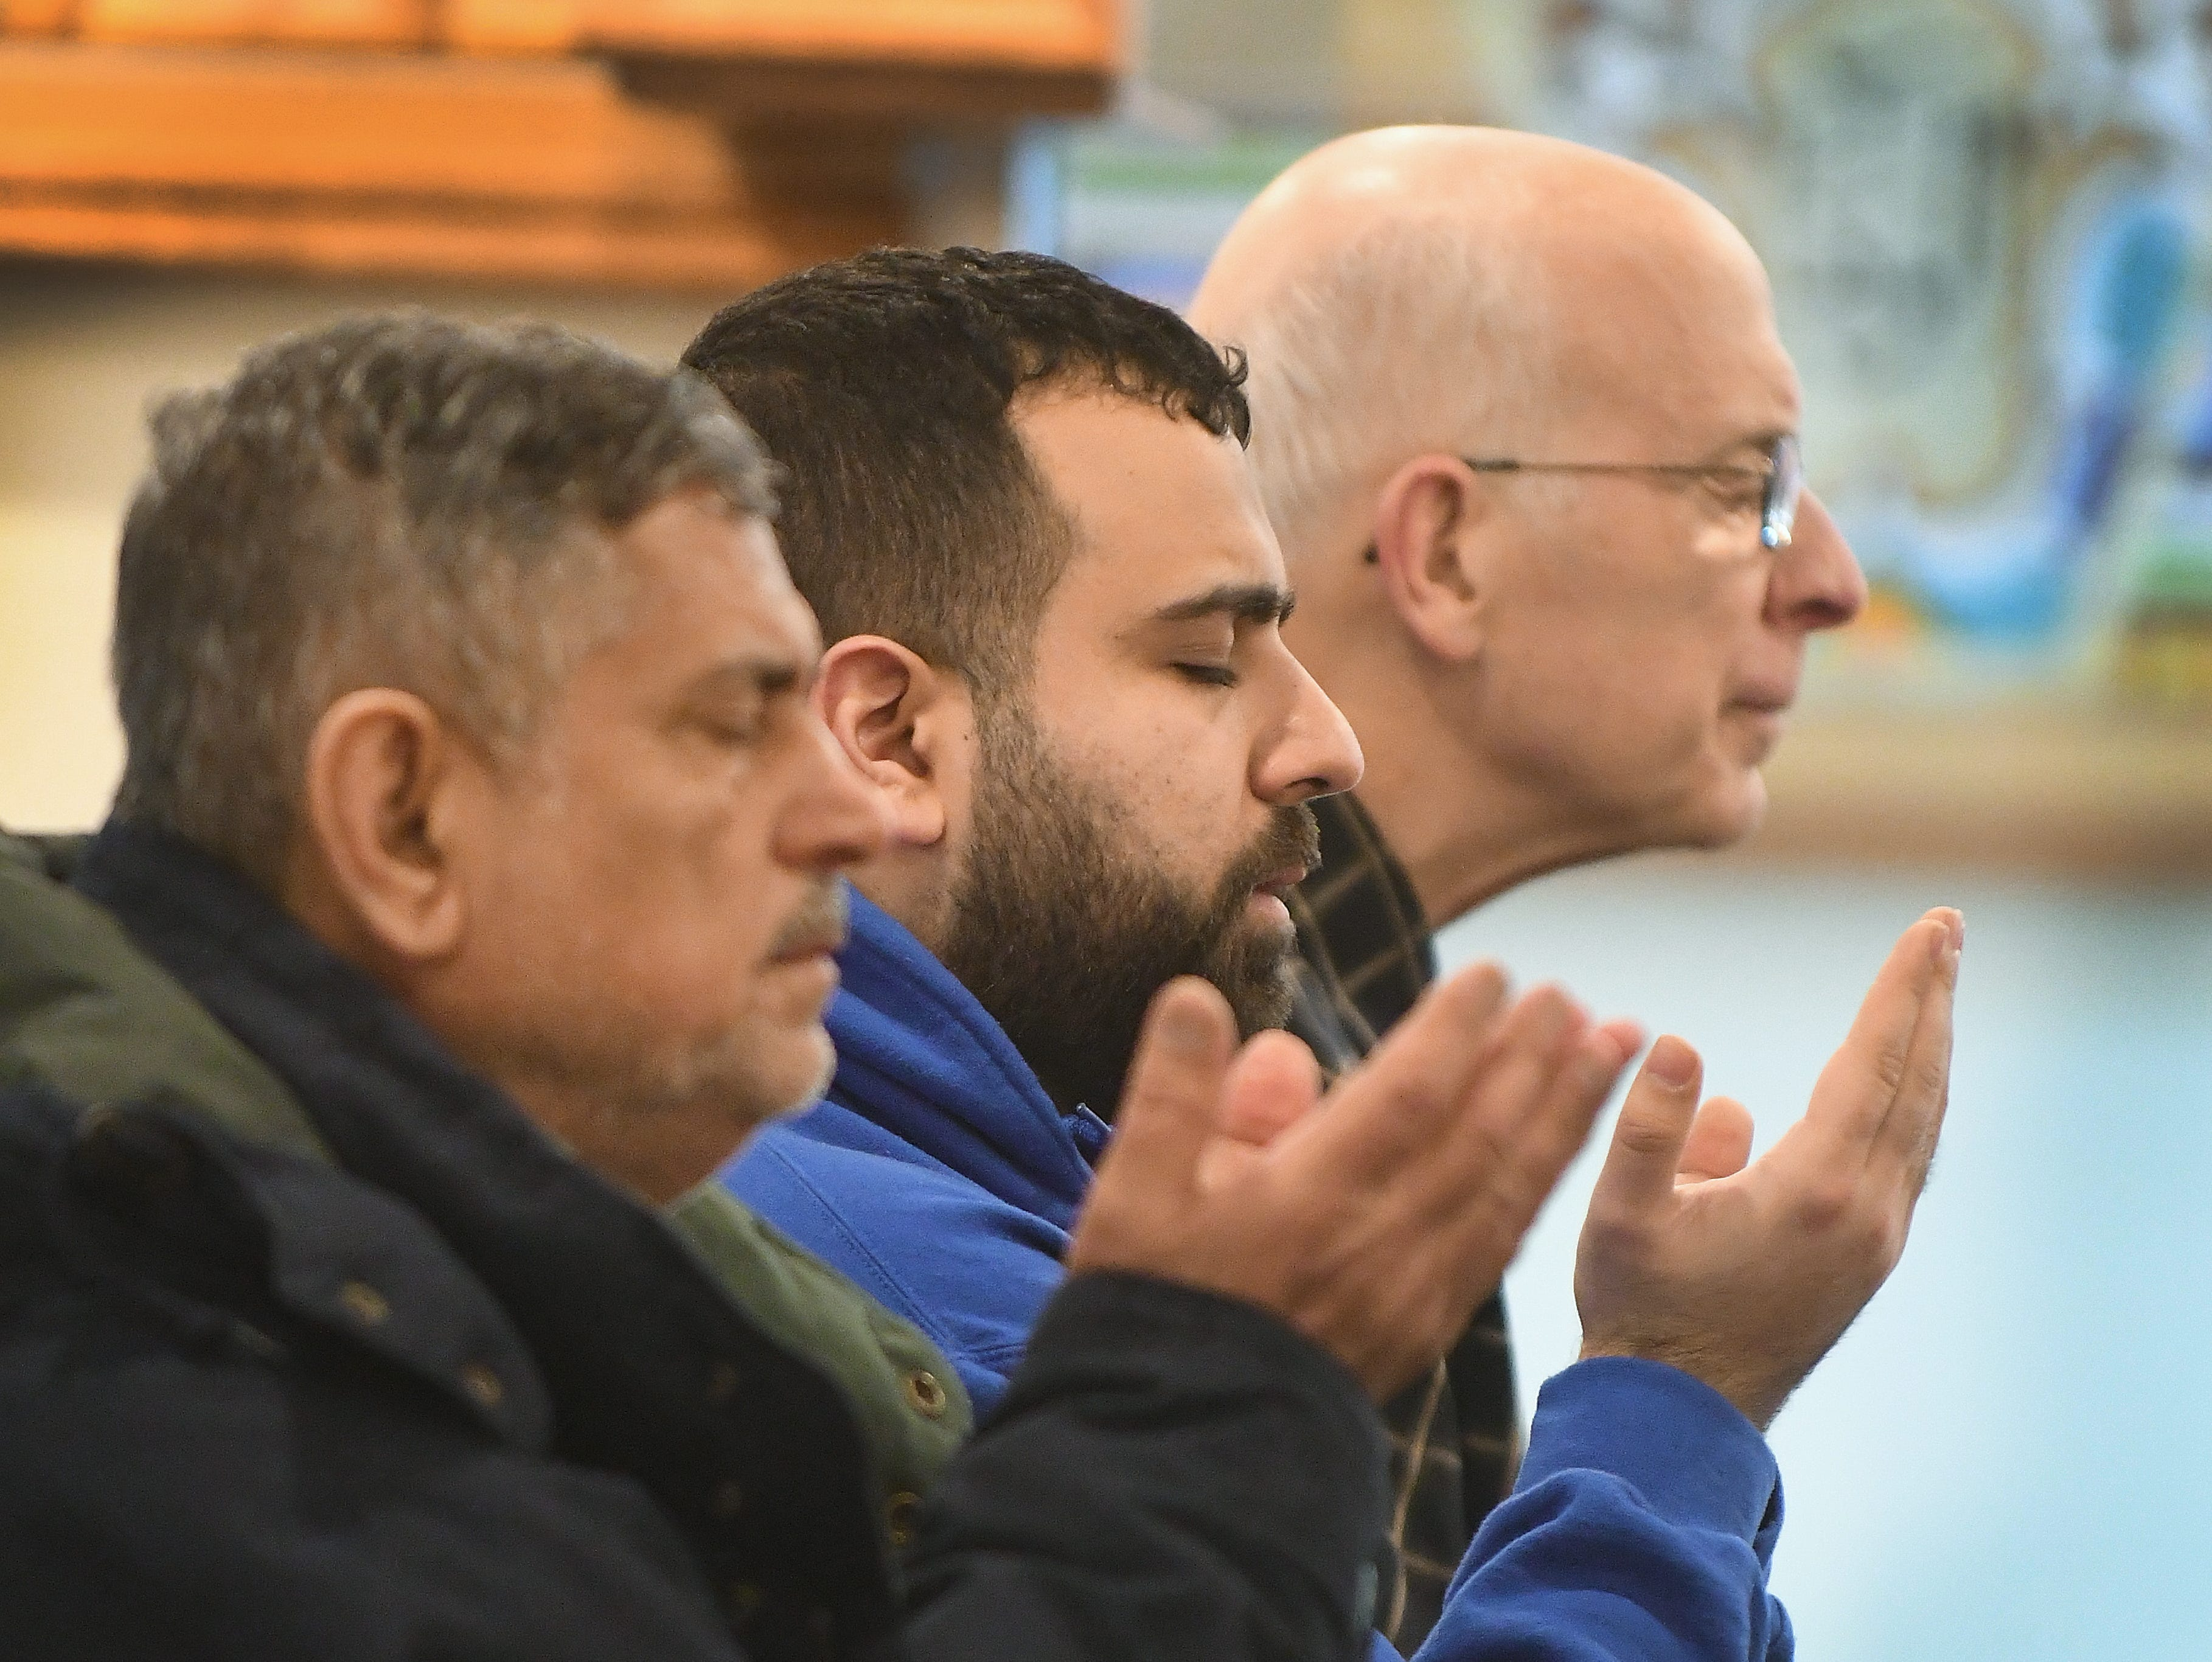 Ibrahim Alhaddad and Hamze Zein are joined by David Kasbow from Metro Detroit Family Church at a prayer service at the Islamic House of Wisdom in Dearborn Heights Friday.